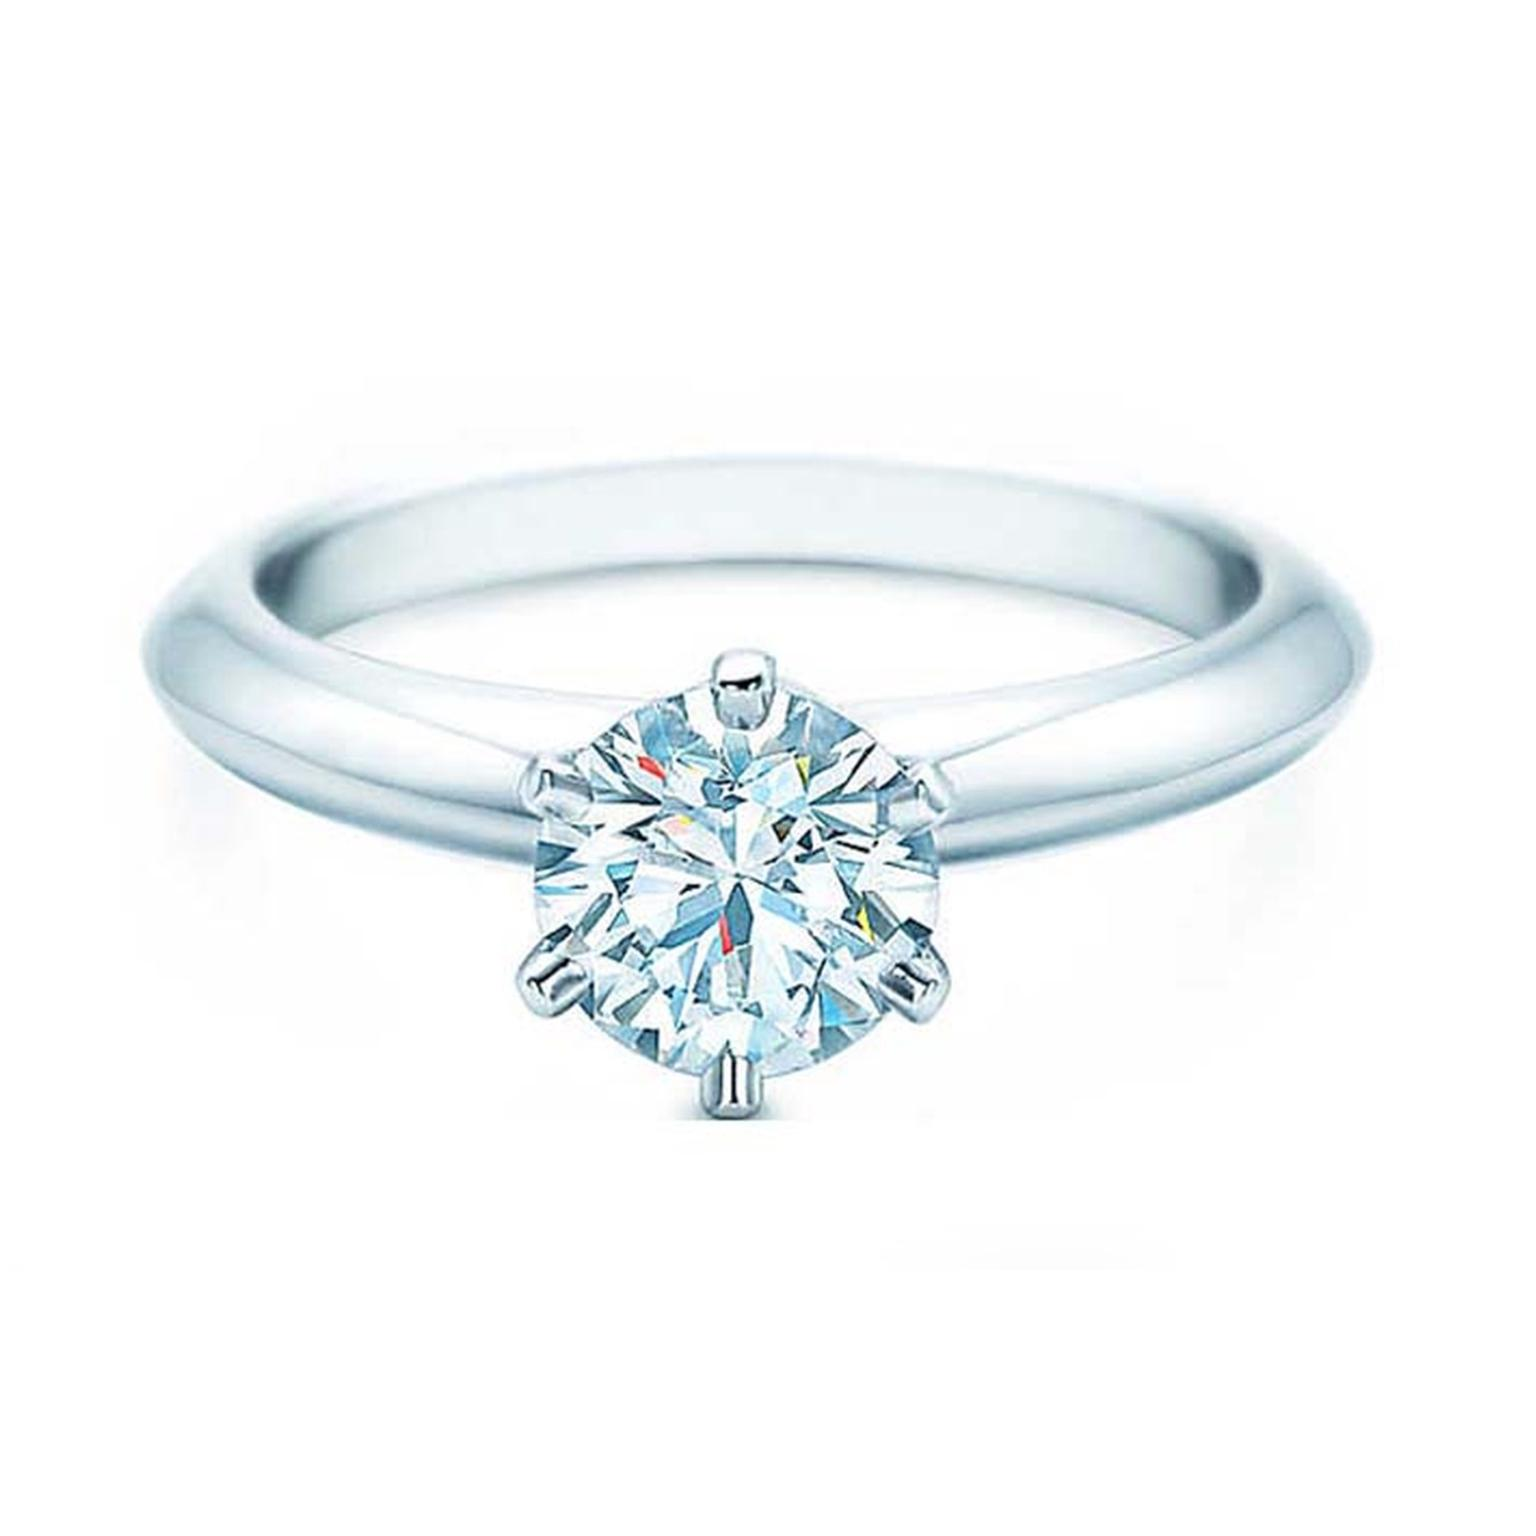 Tiffany Setting 1 Carat Diamond Engagement Ring